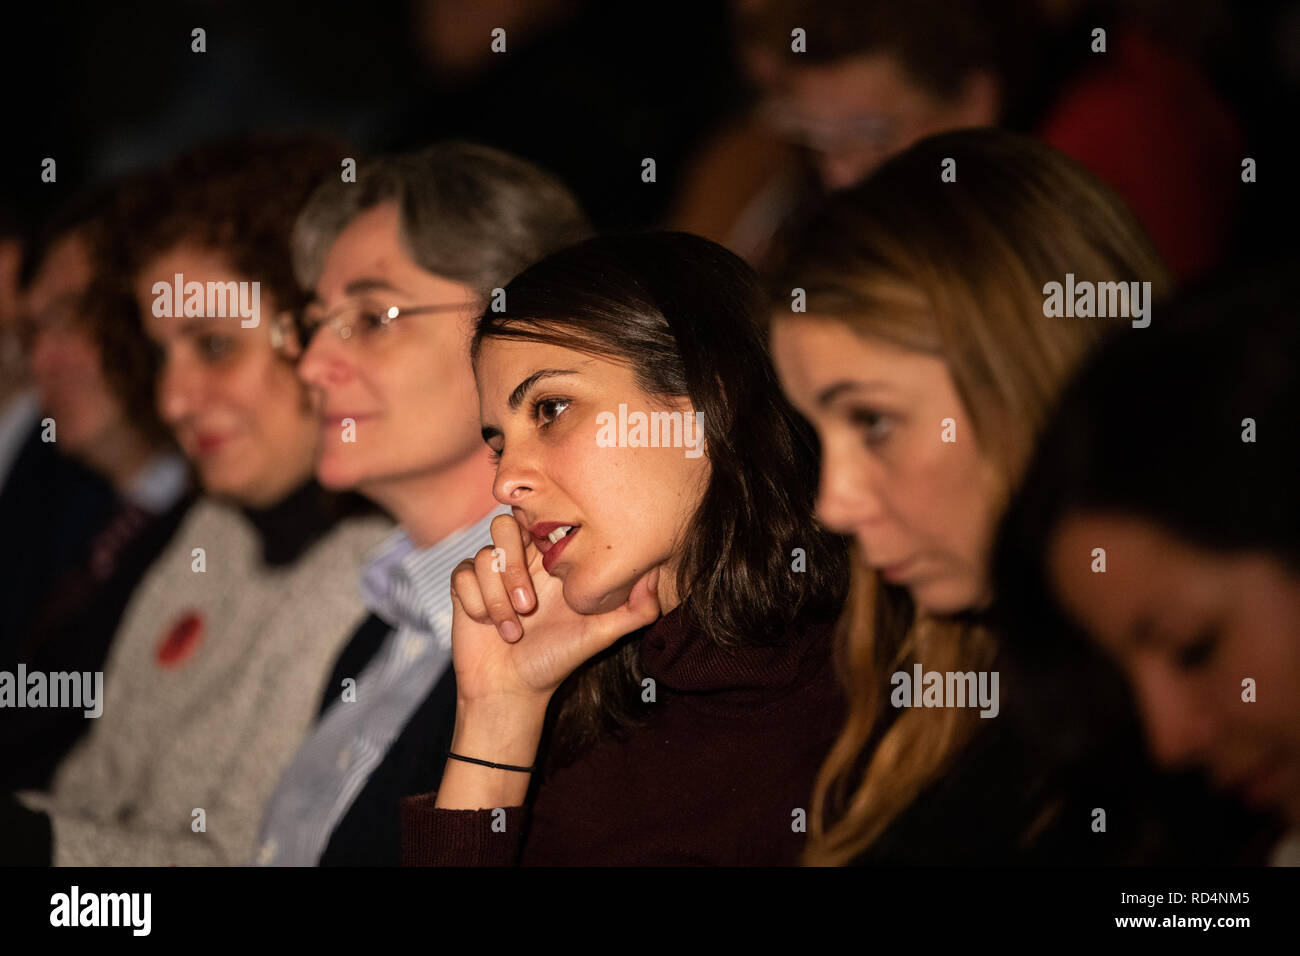 Madrid, Spain. 17th Jan, 2019. Rita Maestre, councilor of the Madrid City Council seen during the event.The Carabanchel Film Week has become one of the longest-running exhibitions in Madrid and has made it consolidate as the prelude to the Goya Awards. Credit: Jesus Hellin/SOPA Images/ZUMA Wire/Alamy Live News - Stock Image